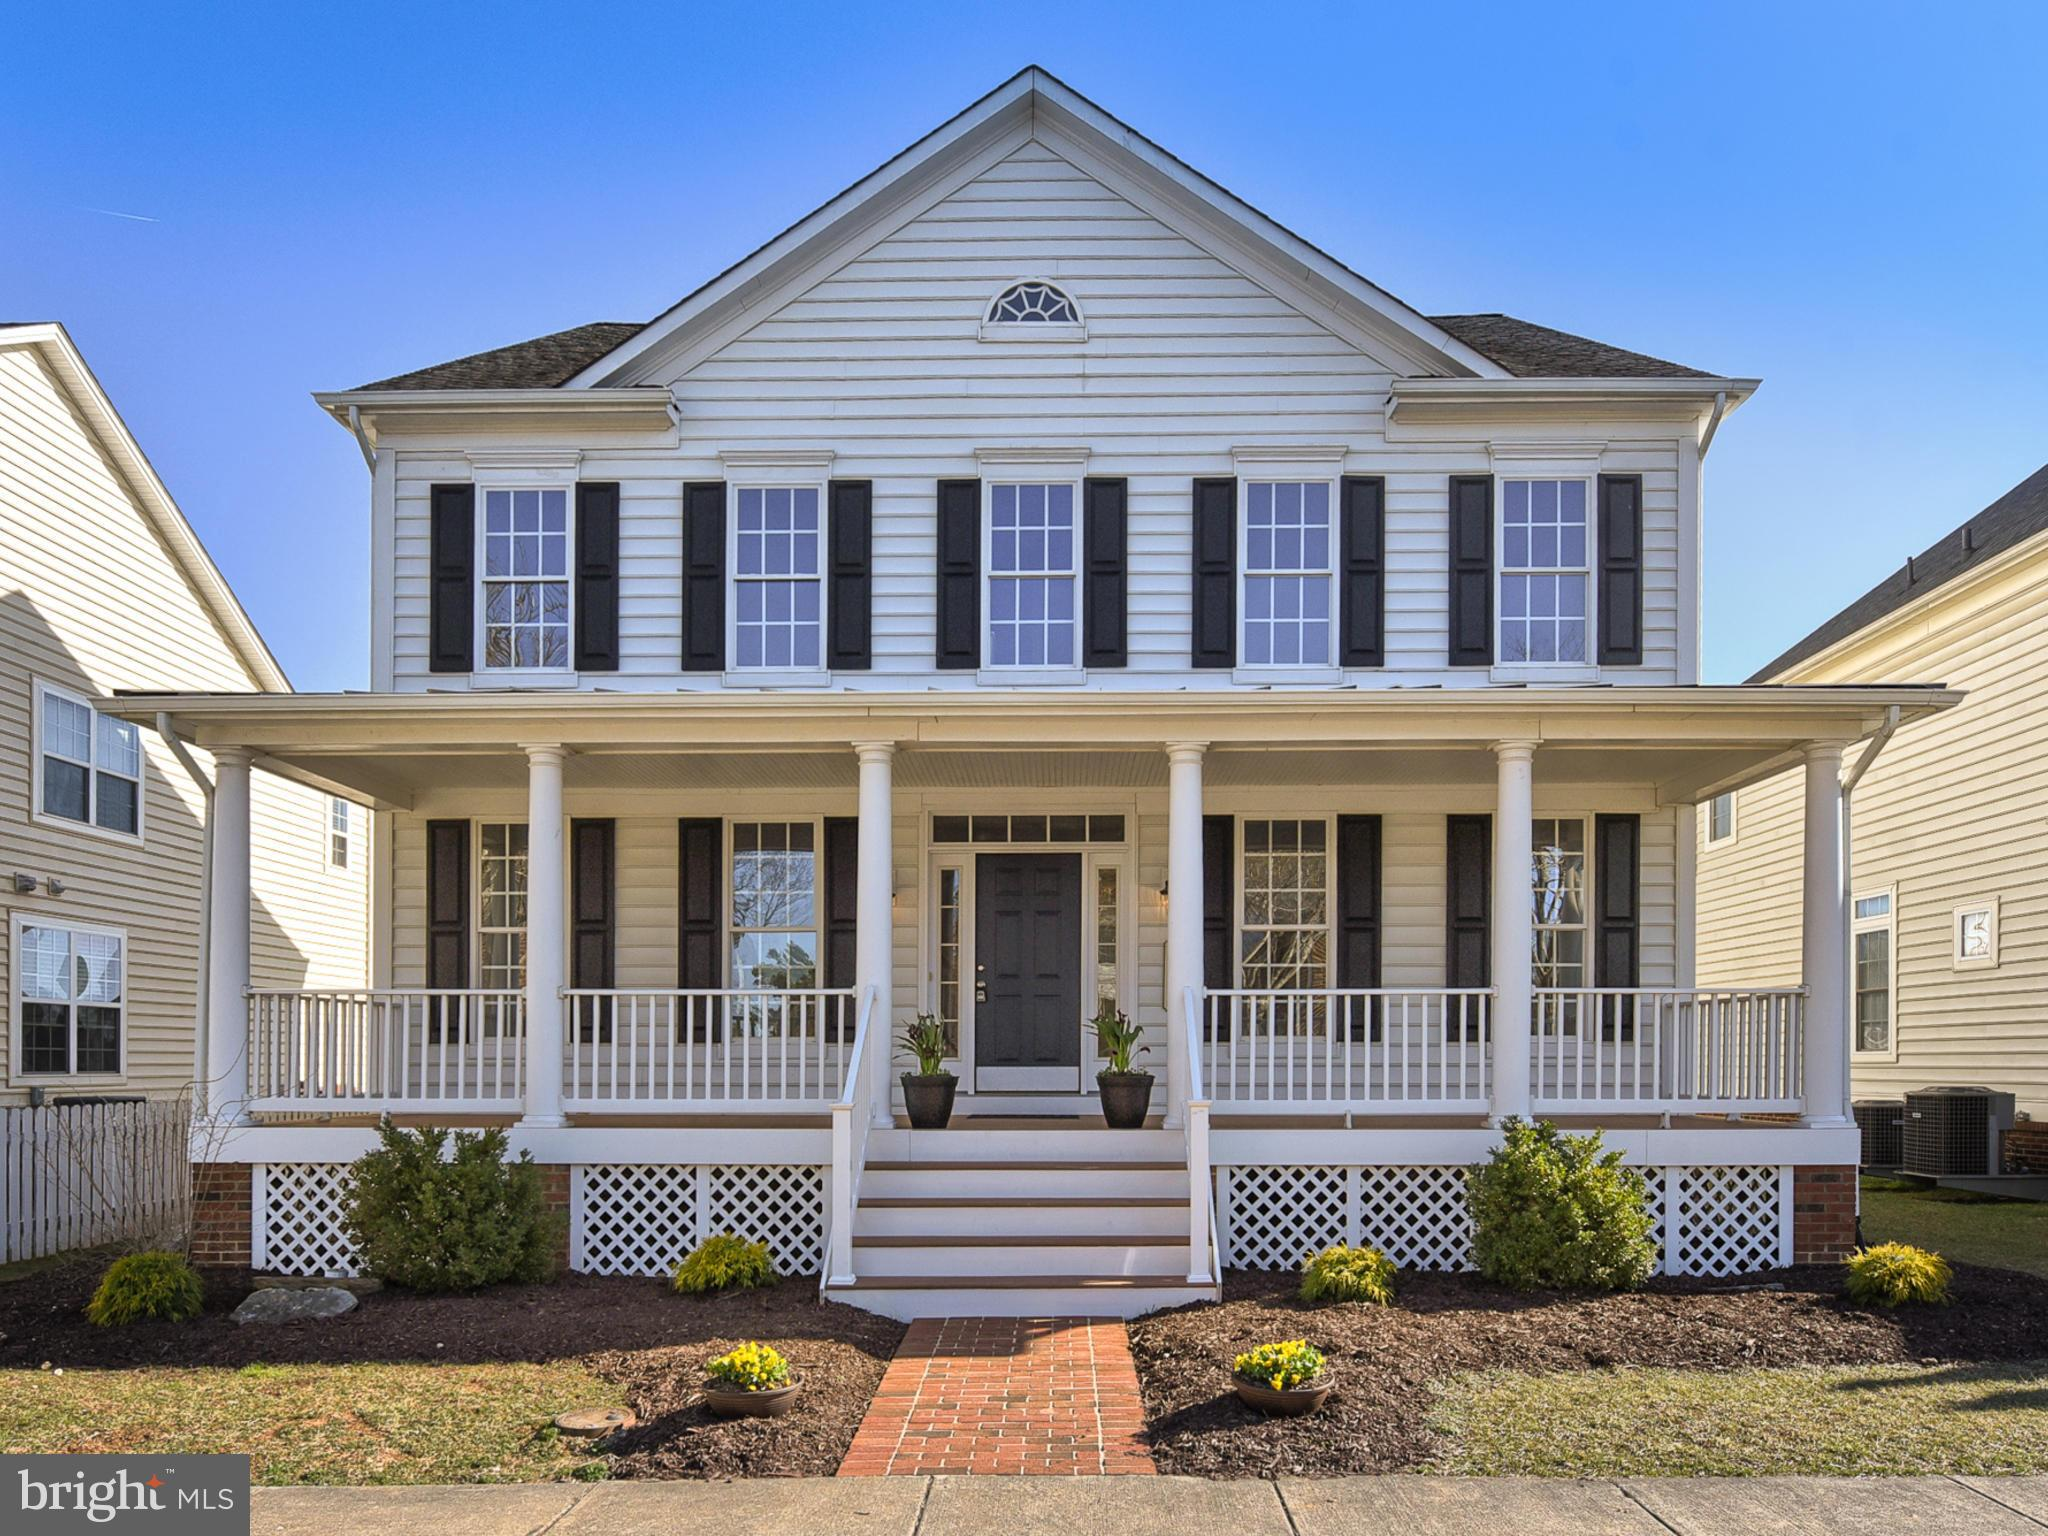 5503 TRACEY BRUCE DRIVE, ADAMSTOWN, MD 21710